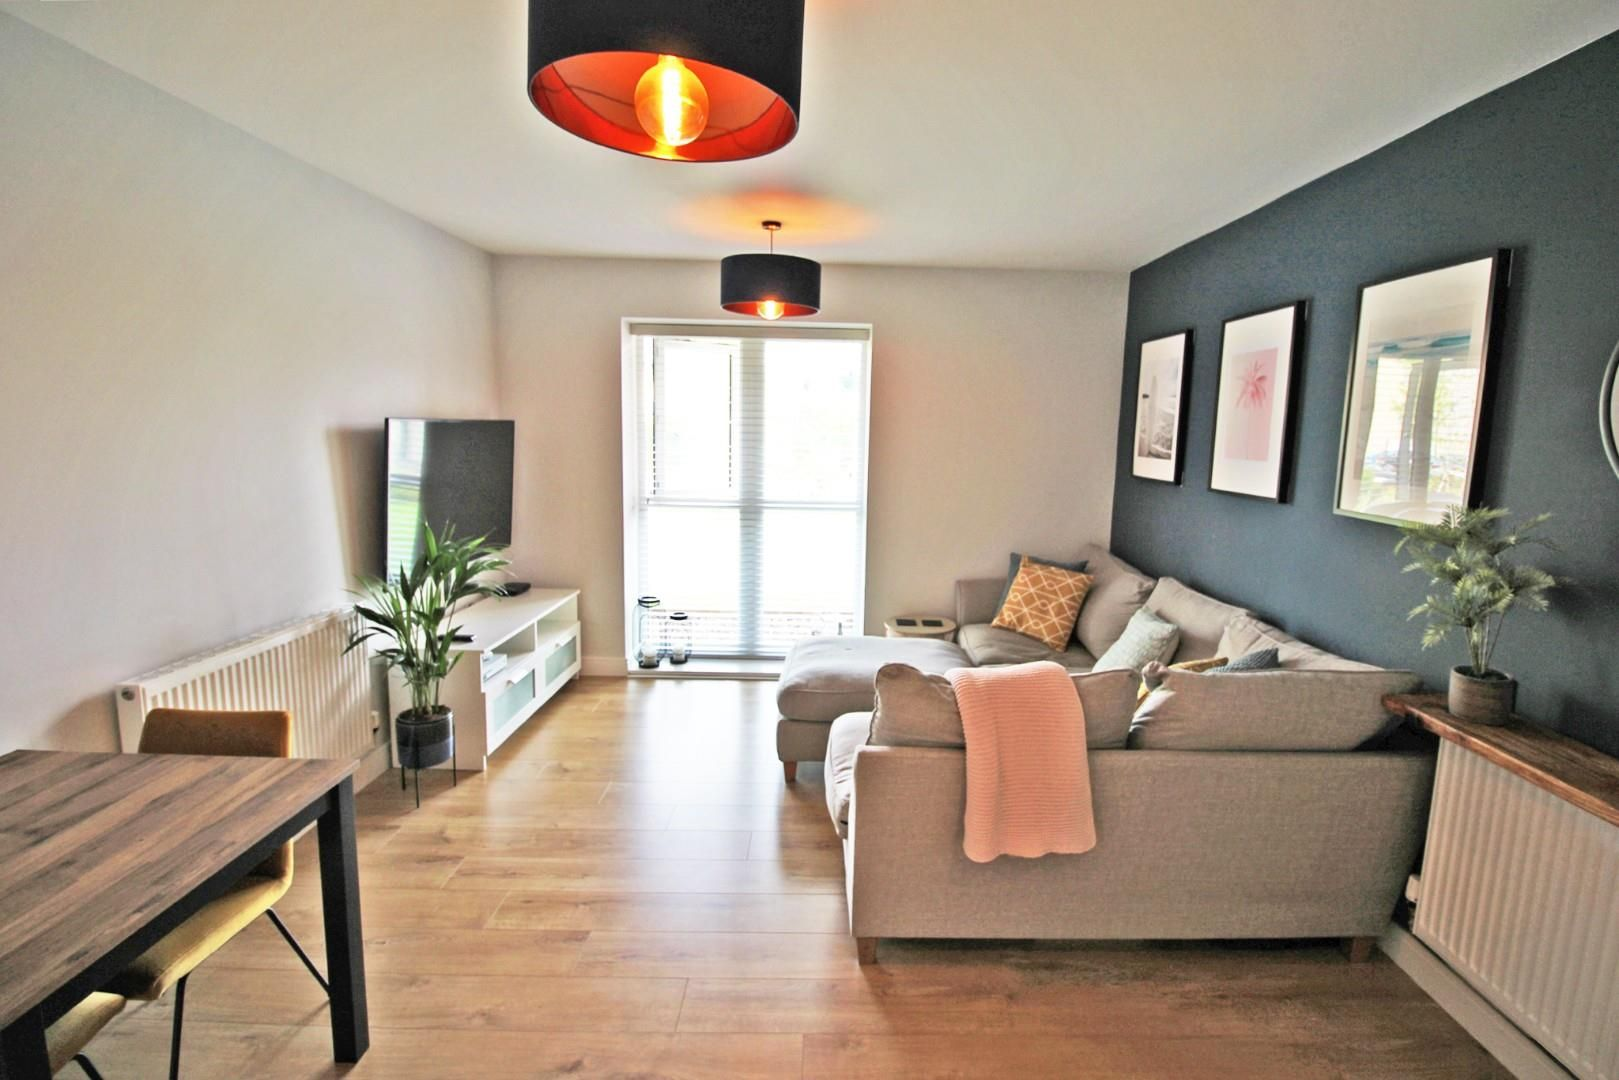 2 bed apartment for sale - Property Image 1